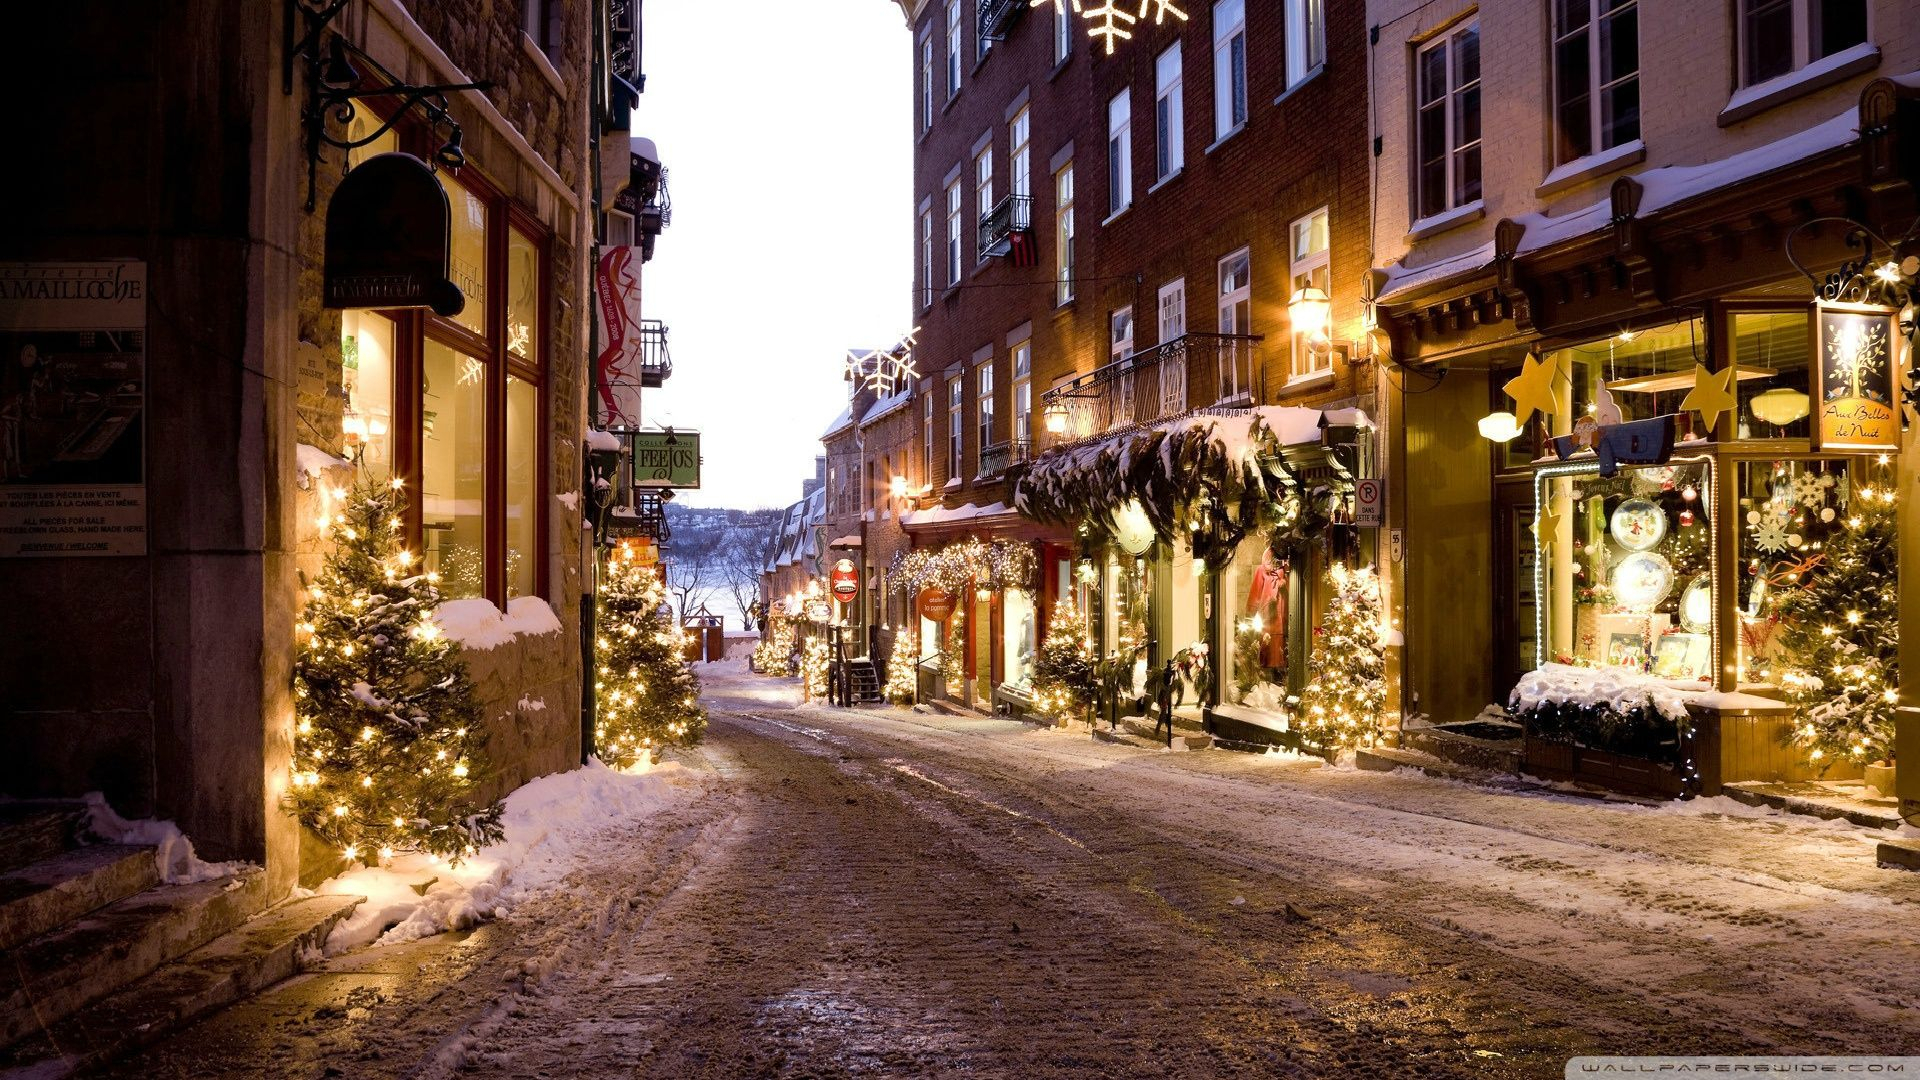 1920x1080 christmas town desktop pc and mac wallpaper | christmas